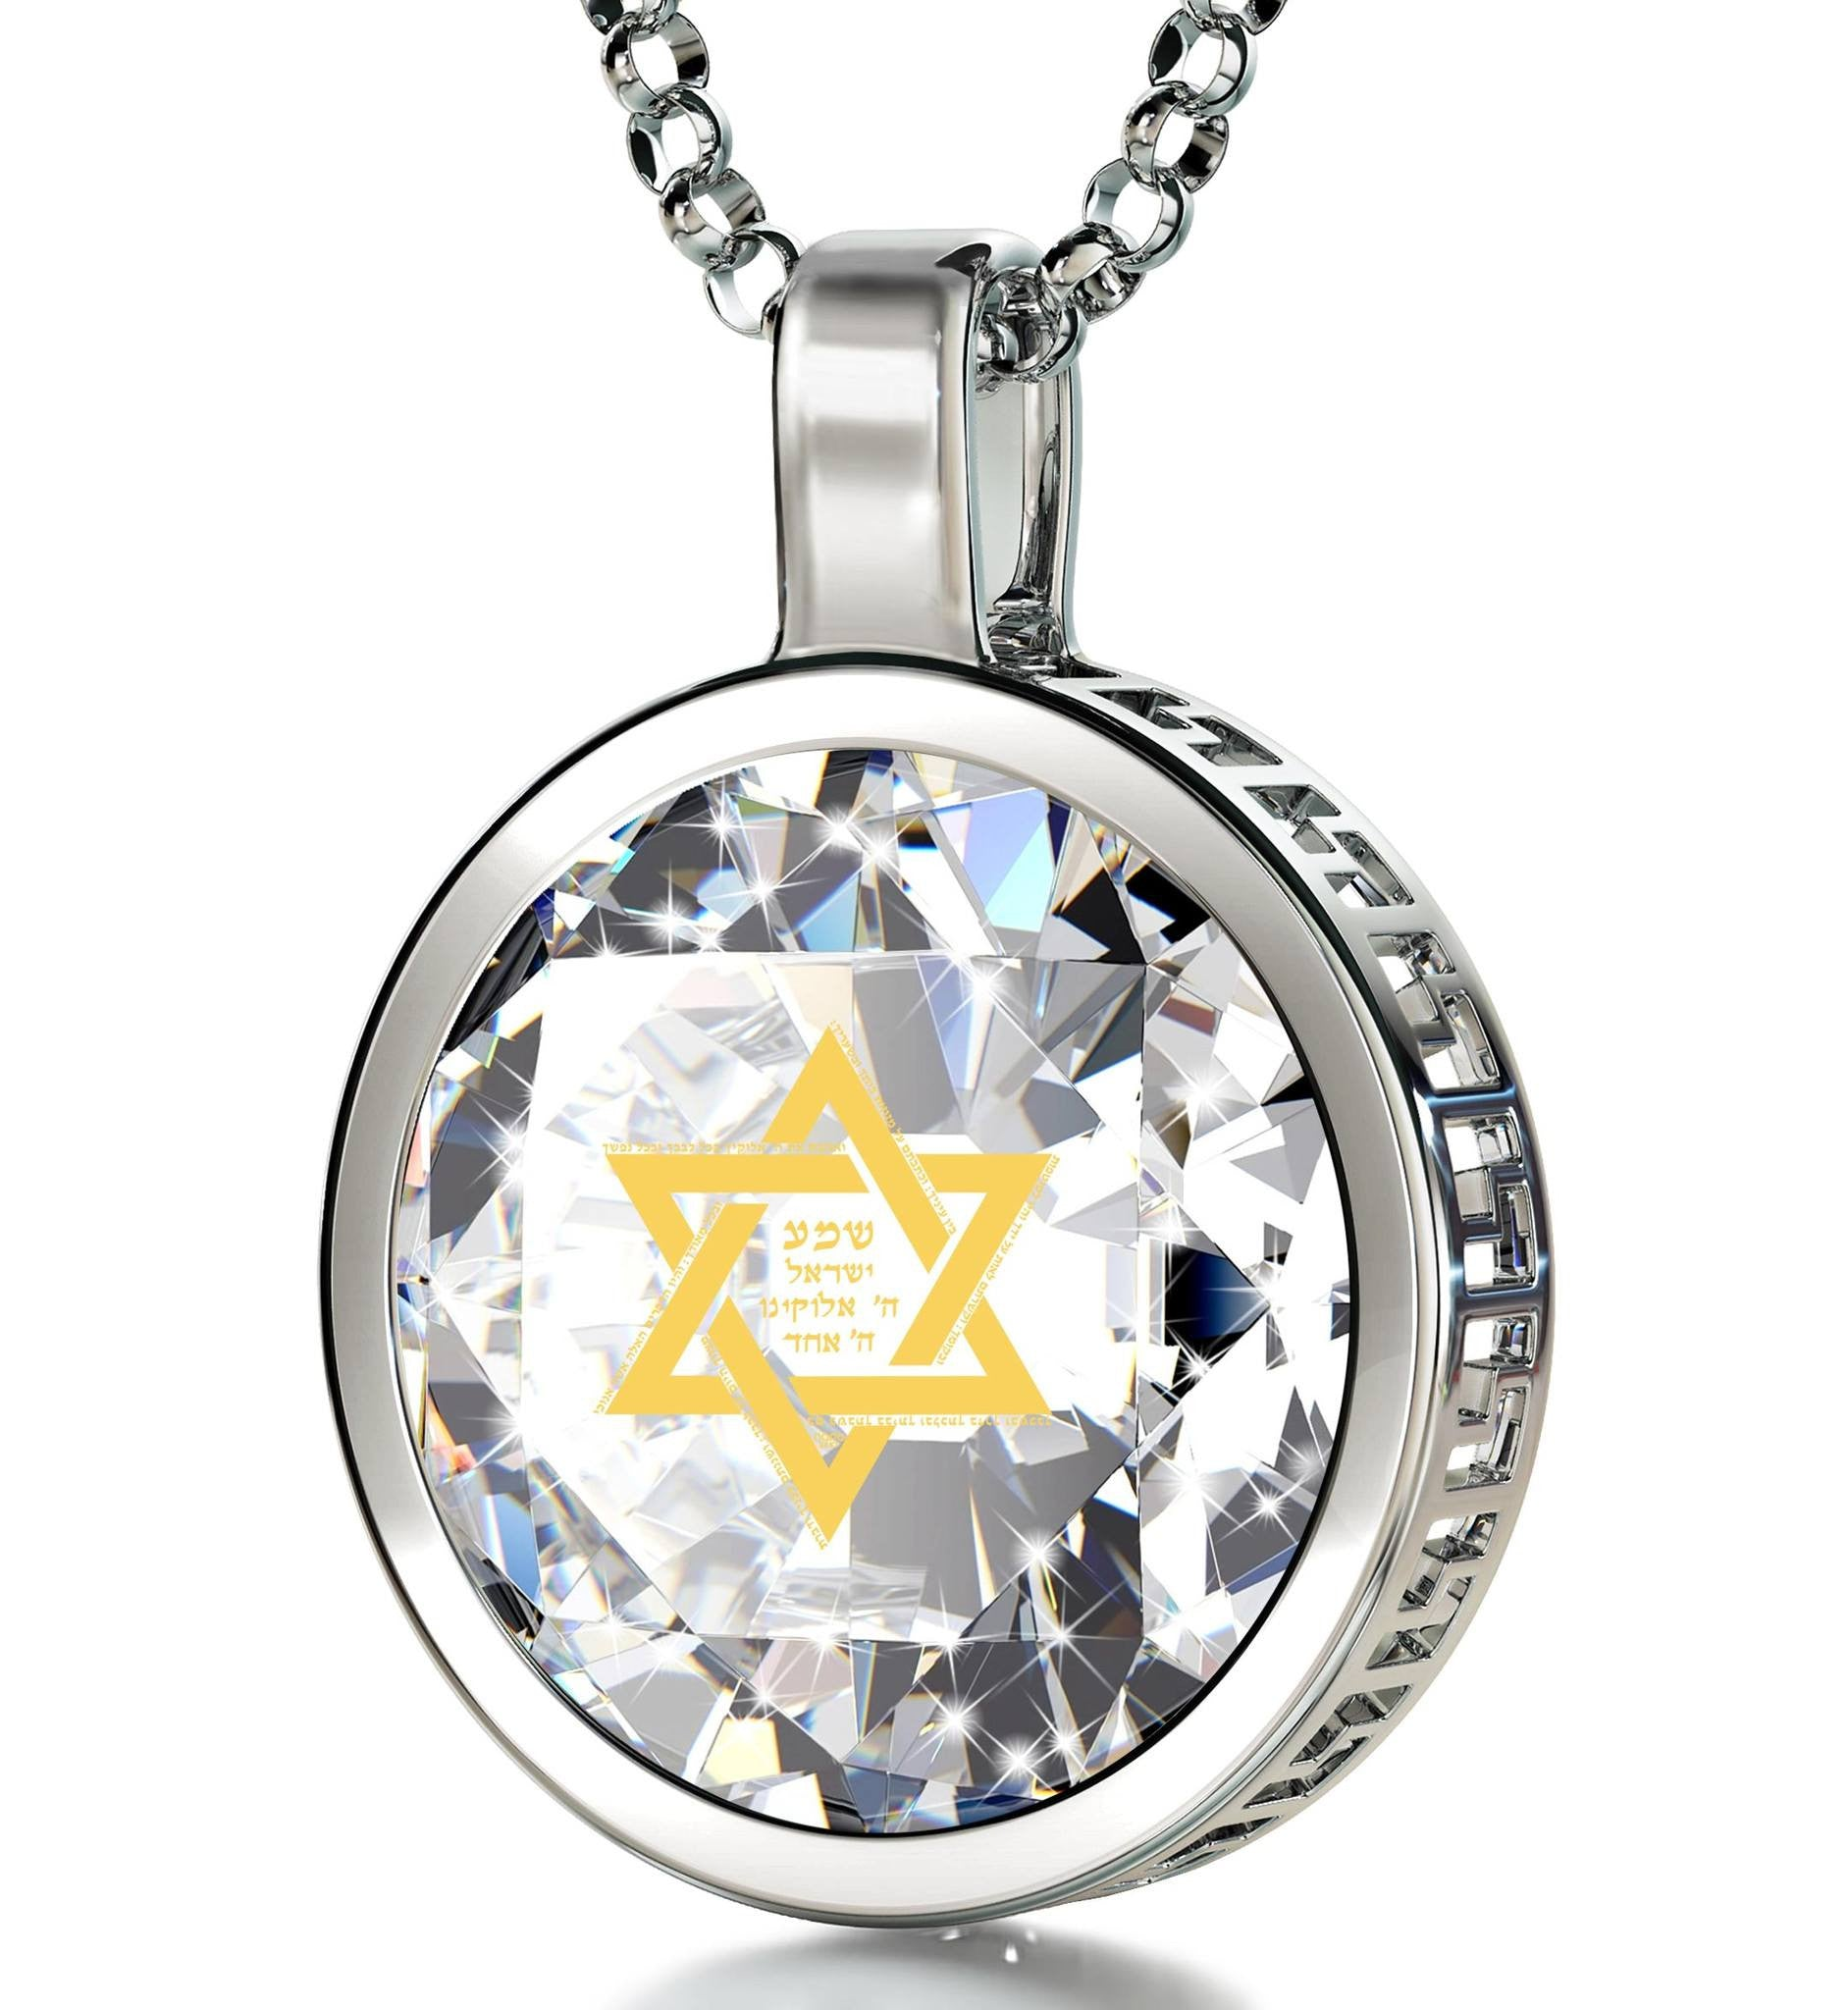 """""Shema Yisrael"" Engraved in 24k, IsraeliJewelry with StonePendant, ScriptureJewelry, Sterling Silver Necklaces"""